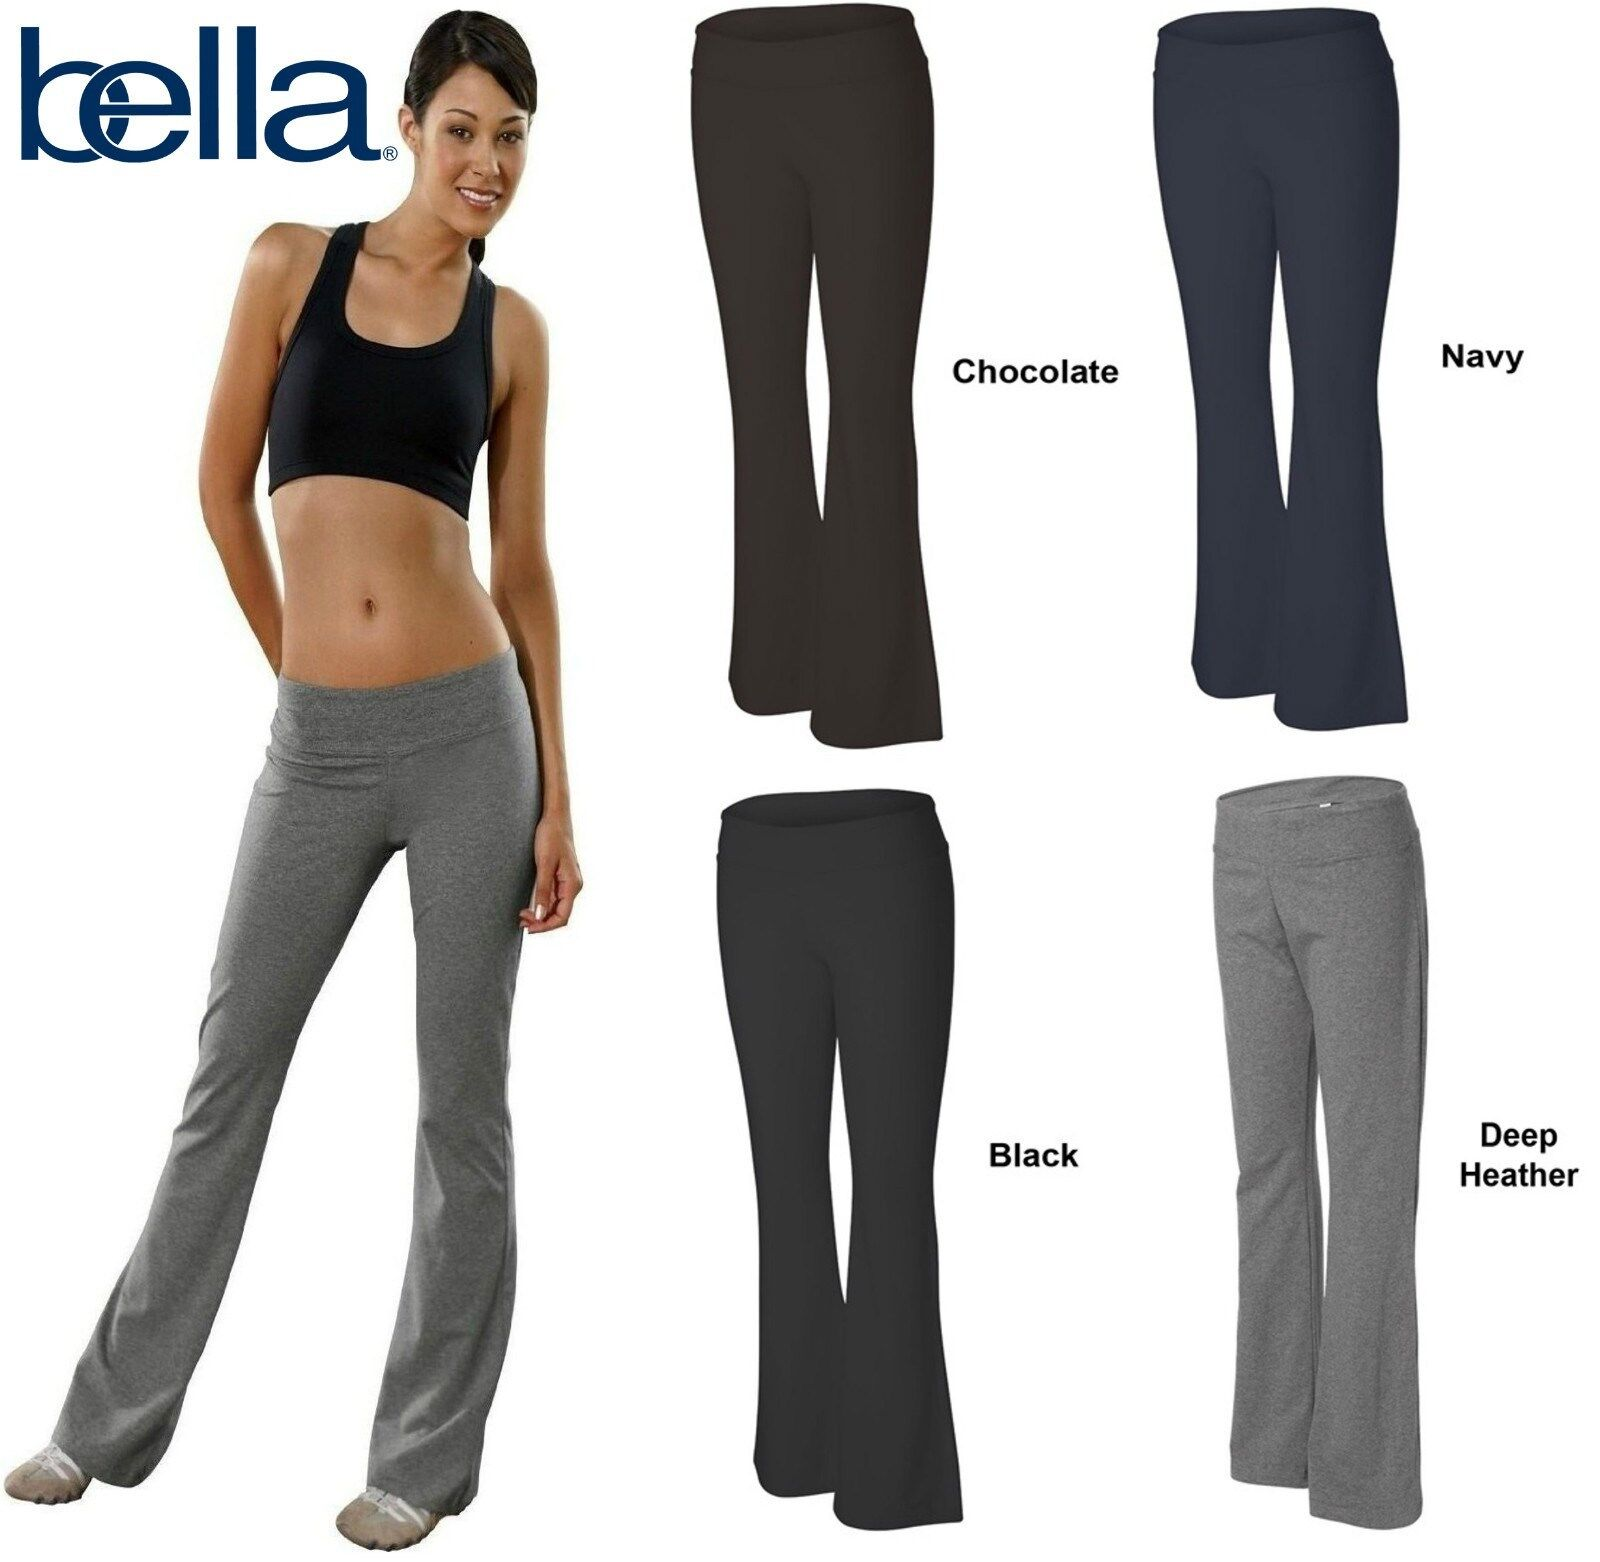 B810 Bella+Canvas Womens Active Wear Cotton Spandex Fitness Pants 810 New!